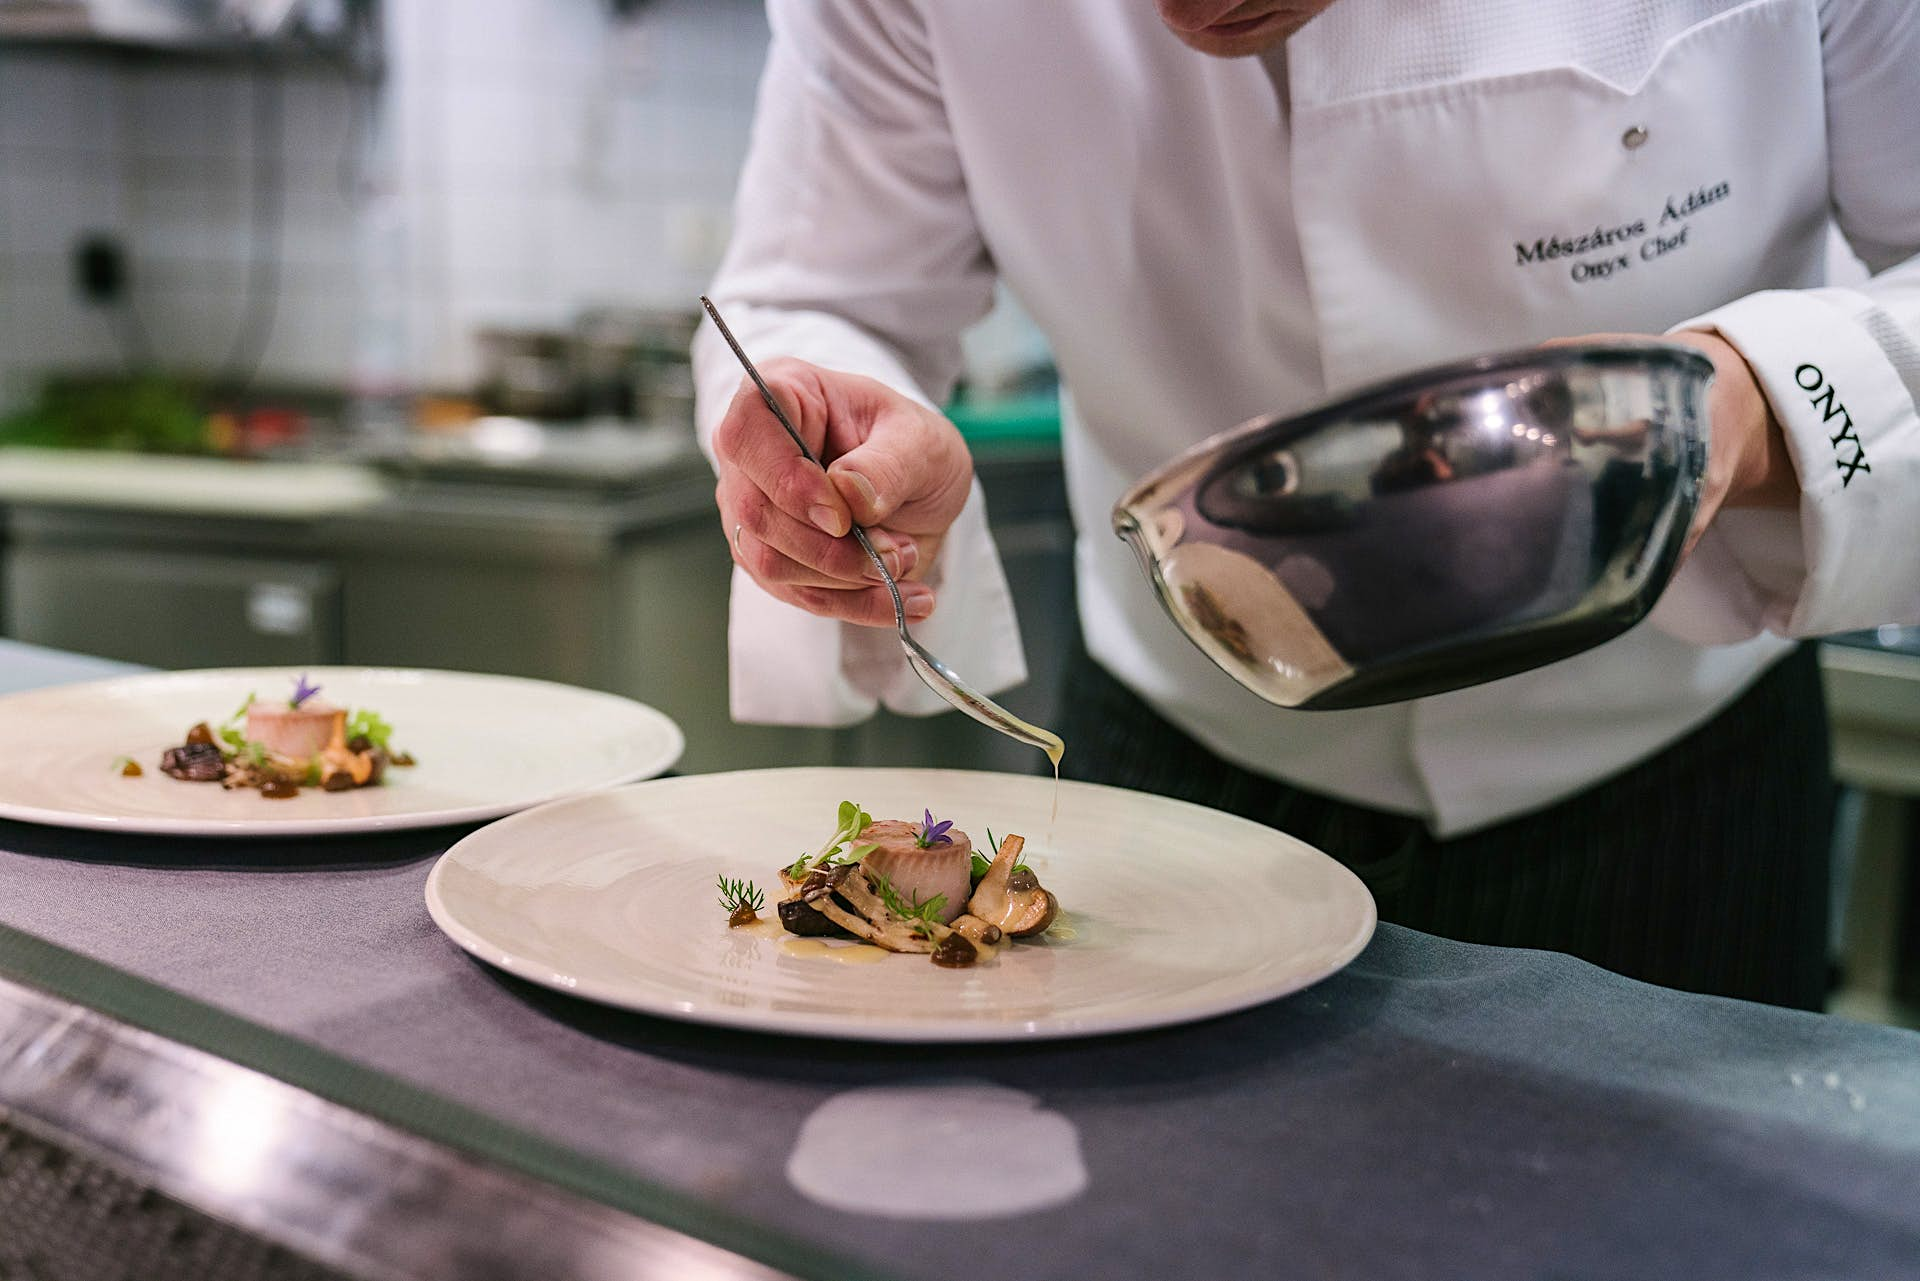 A chef at Onyx restaurant in Budapest, Hungary, is delicately spooning sauce over an exquisitely presented dish.